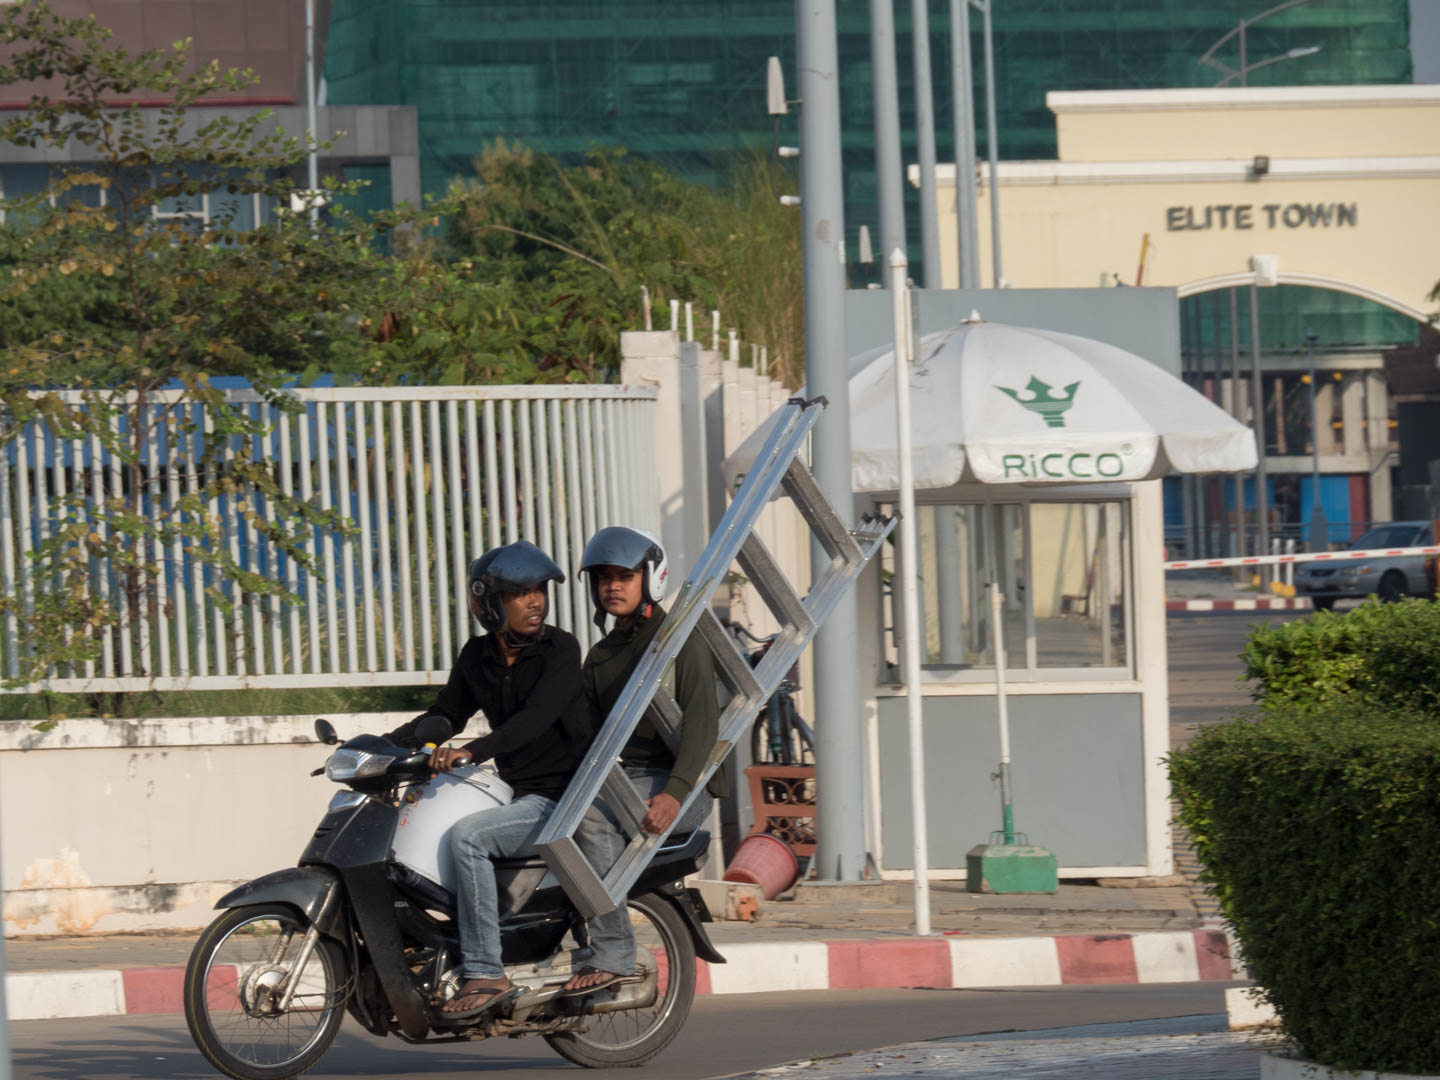 a moto carrying 2 men and a ladder